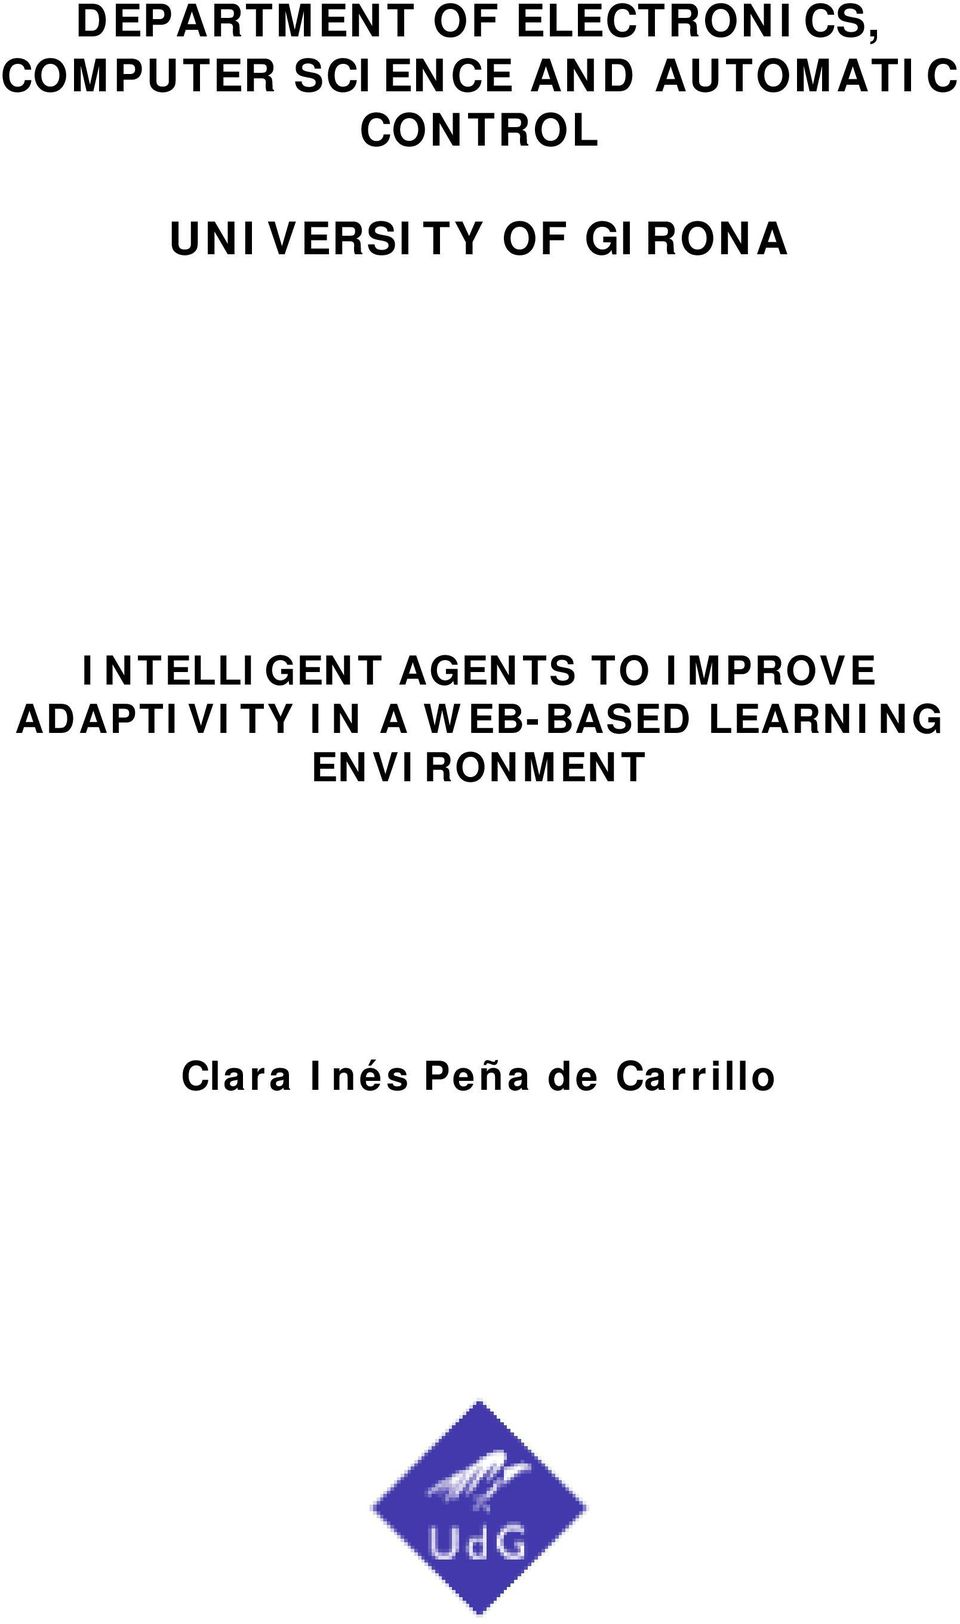 INTELLIGENT AGENTS TO IMPROVE ADAPTIVITY IN A